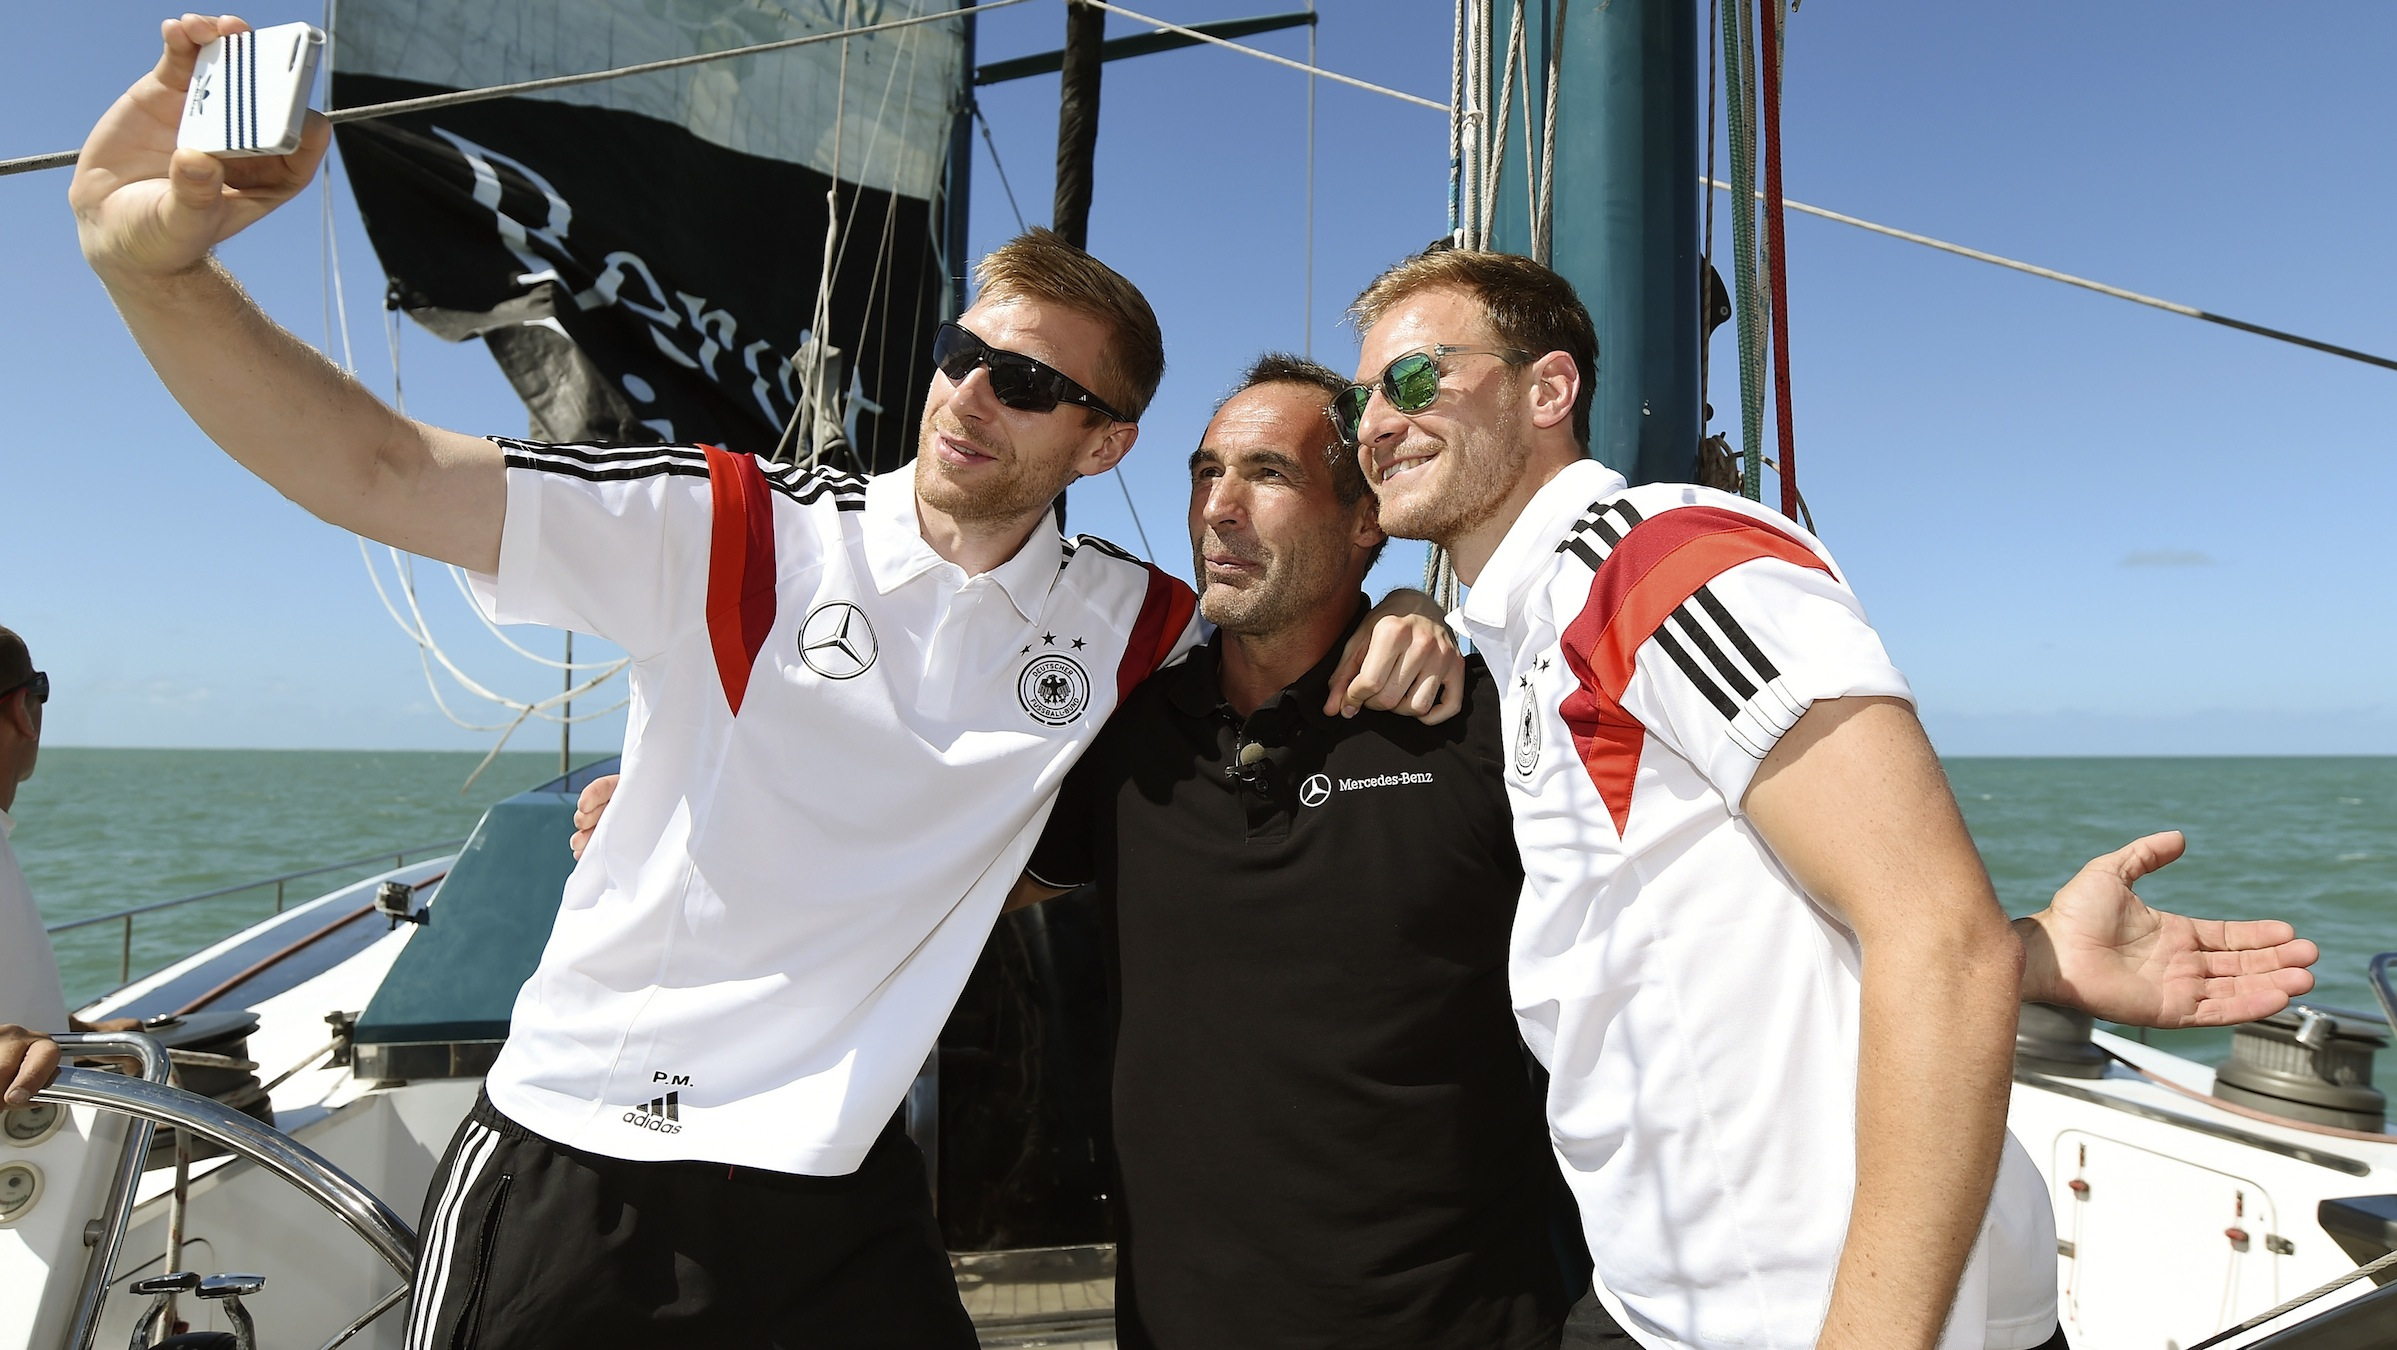 Germany's national soccer team players Per Mertesacker (L) and Benedikt Hoewedes (R) take a picture together with explorer and adventurer Mike Horn of Switzerland (C) aboard the sailing ship 'Pangaea' near Santo Andre village, near Porto Seguro June 10, 2014. REUTERS/Markus Gilliar/Pool (BRAZIL - Tags: SPORT SOCCER WORLD CUP ) - RTR3T4PR